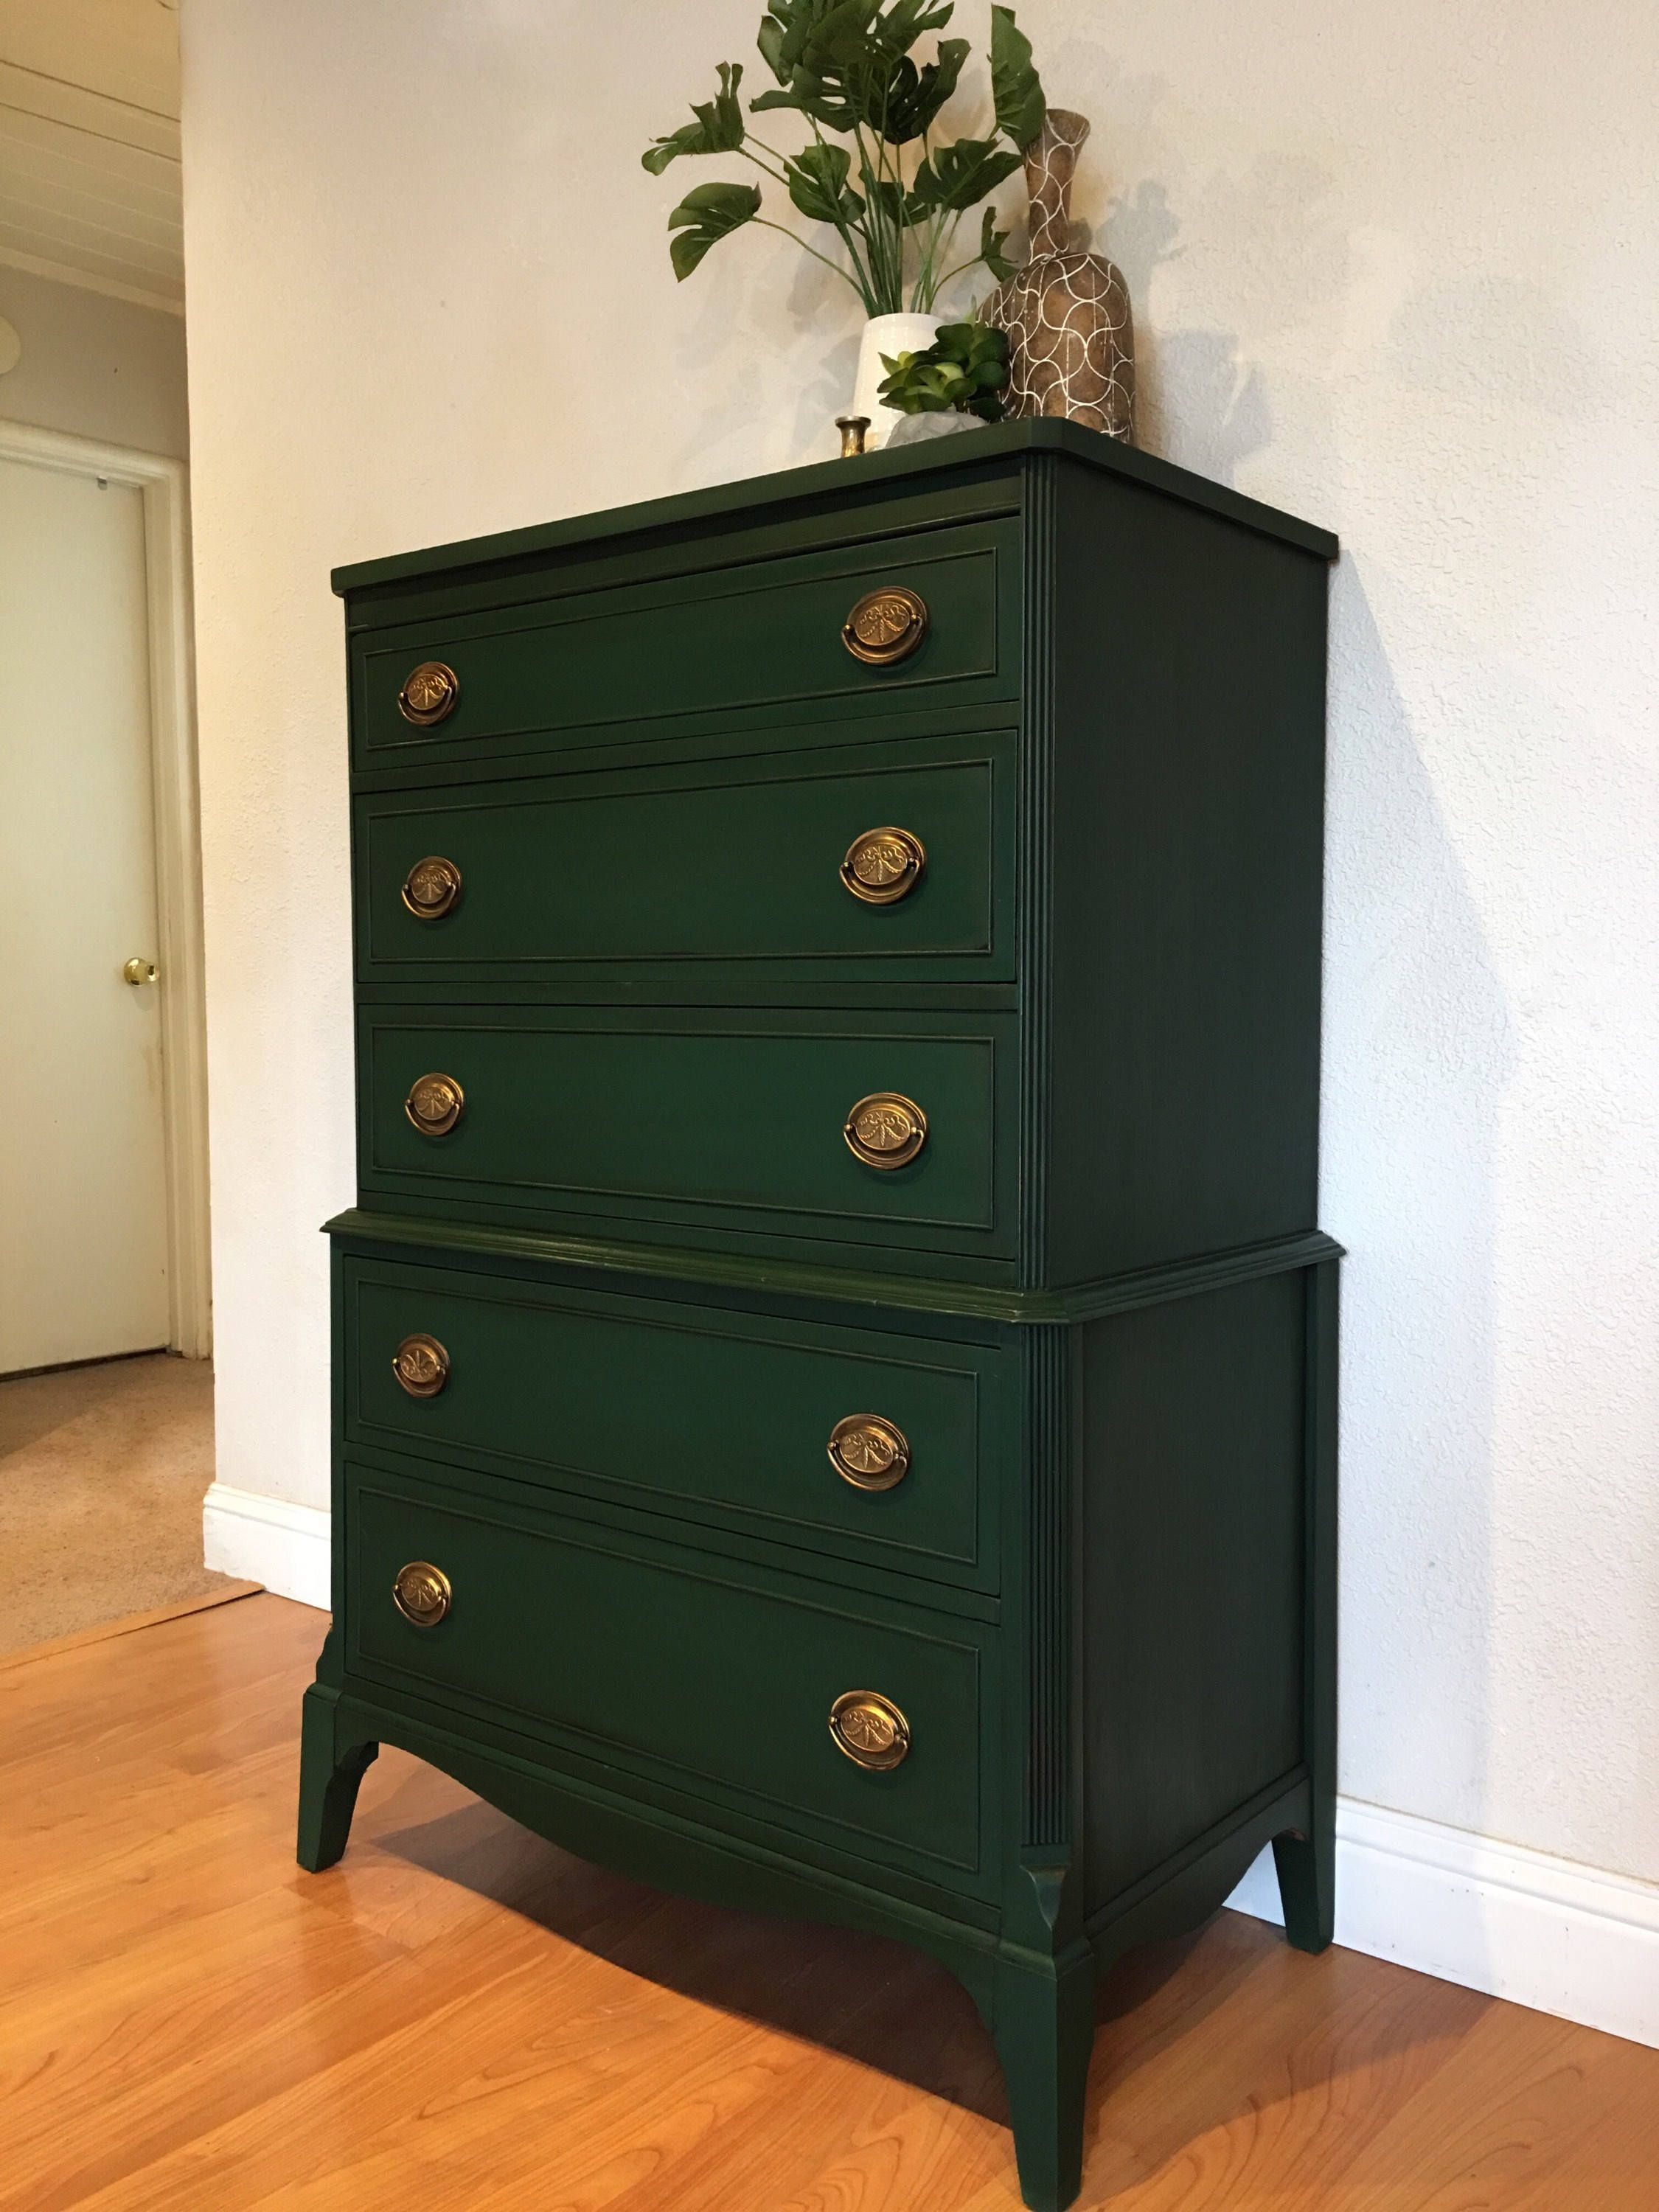 Sold Emerald Green Tall Dresser Vintage Antique Solid Wood Chest Of Drawers Boho Chic Bohemian Jewel Tone Tall Boy San Francisco Bay Area Green Painted Furniture Green Furniture Furniture Makeover Diy [ 3000 x 2250 Pixel ]